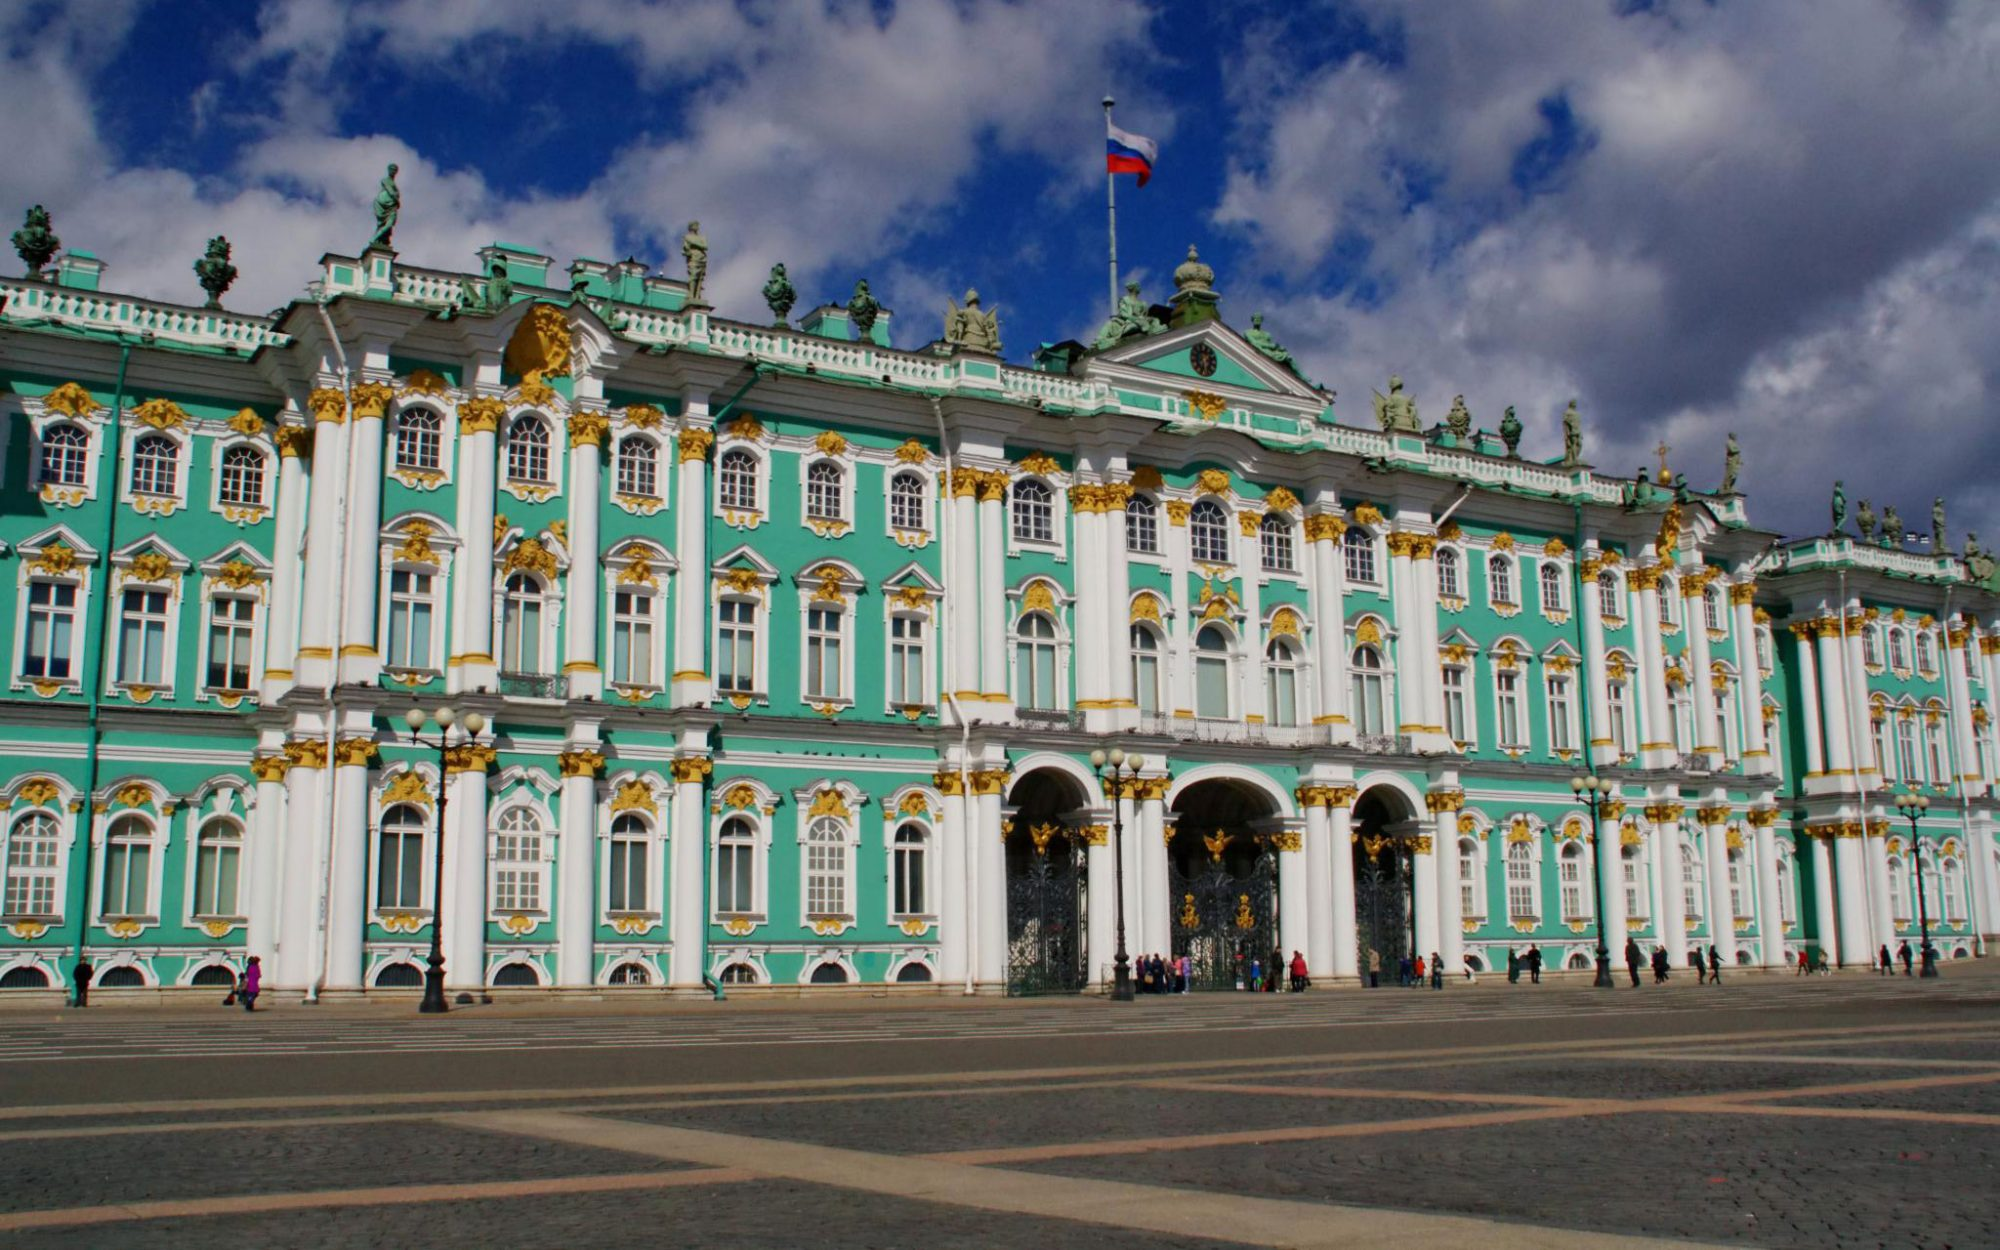 World's Most-Visited Castles: No. 6 The Winter Palace (State Hermitage Museum), St. Petersburg, Russia